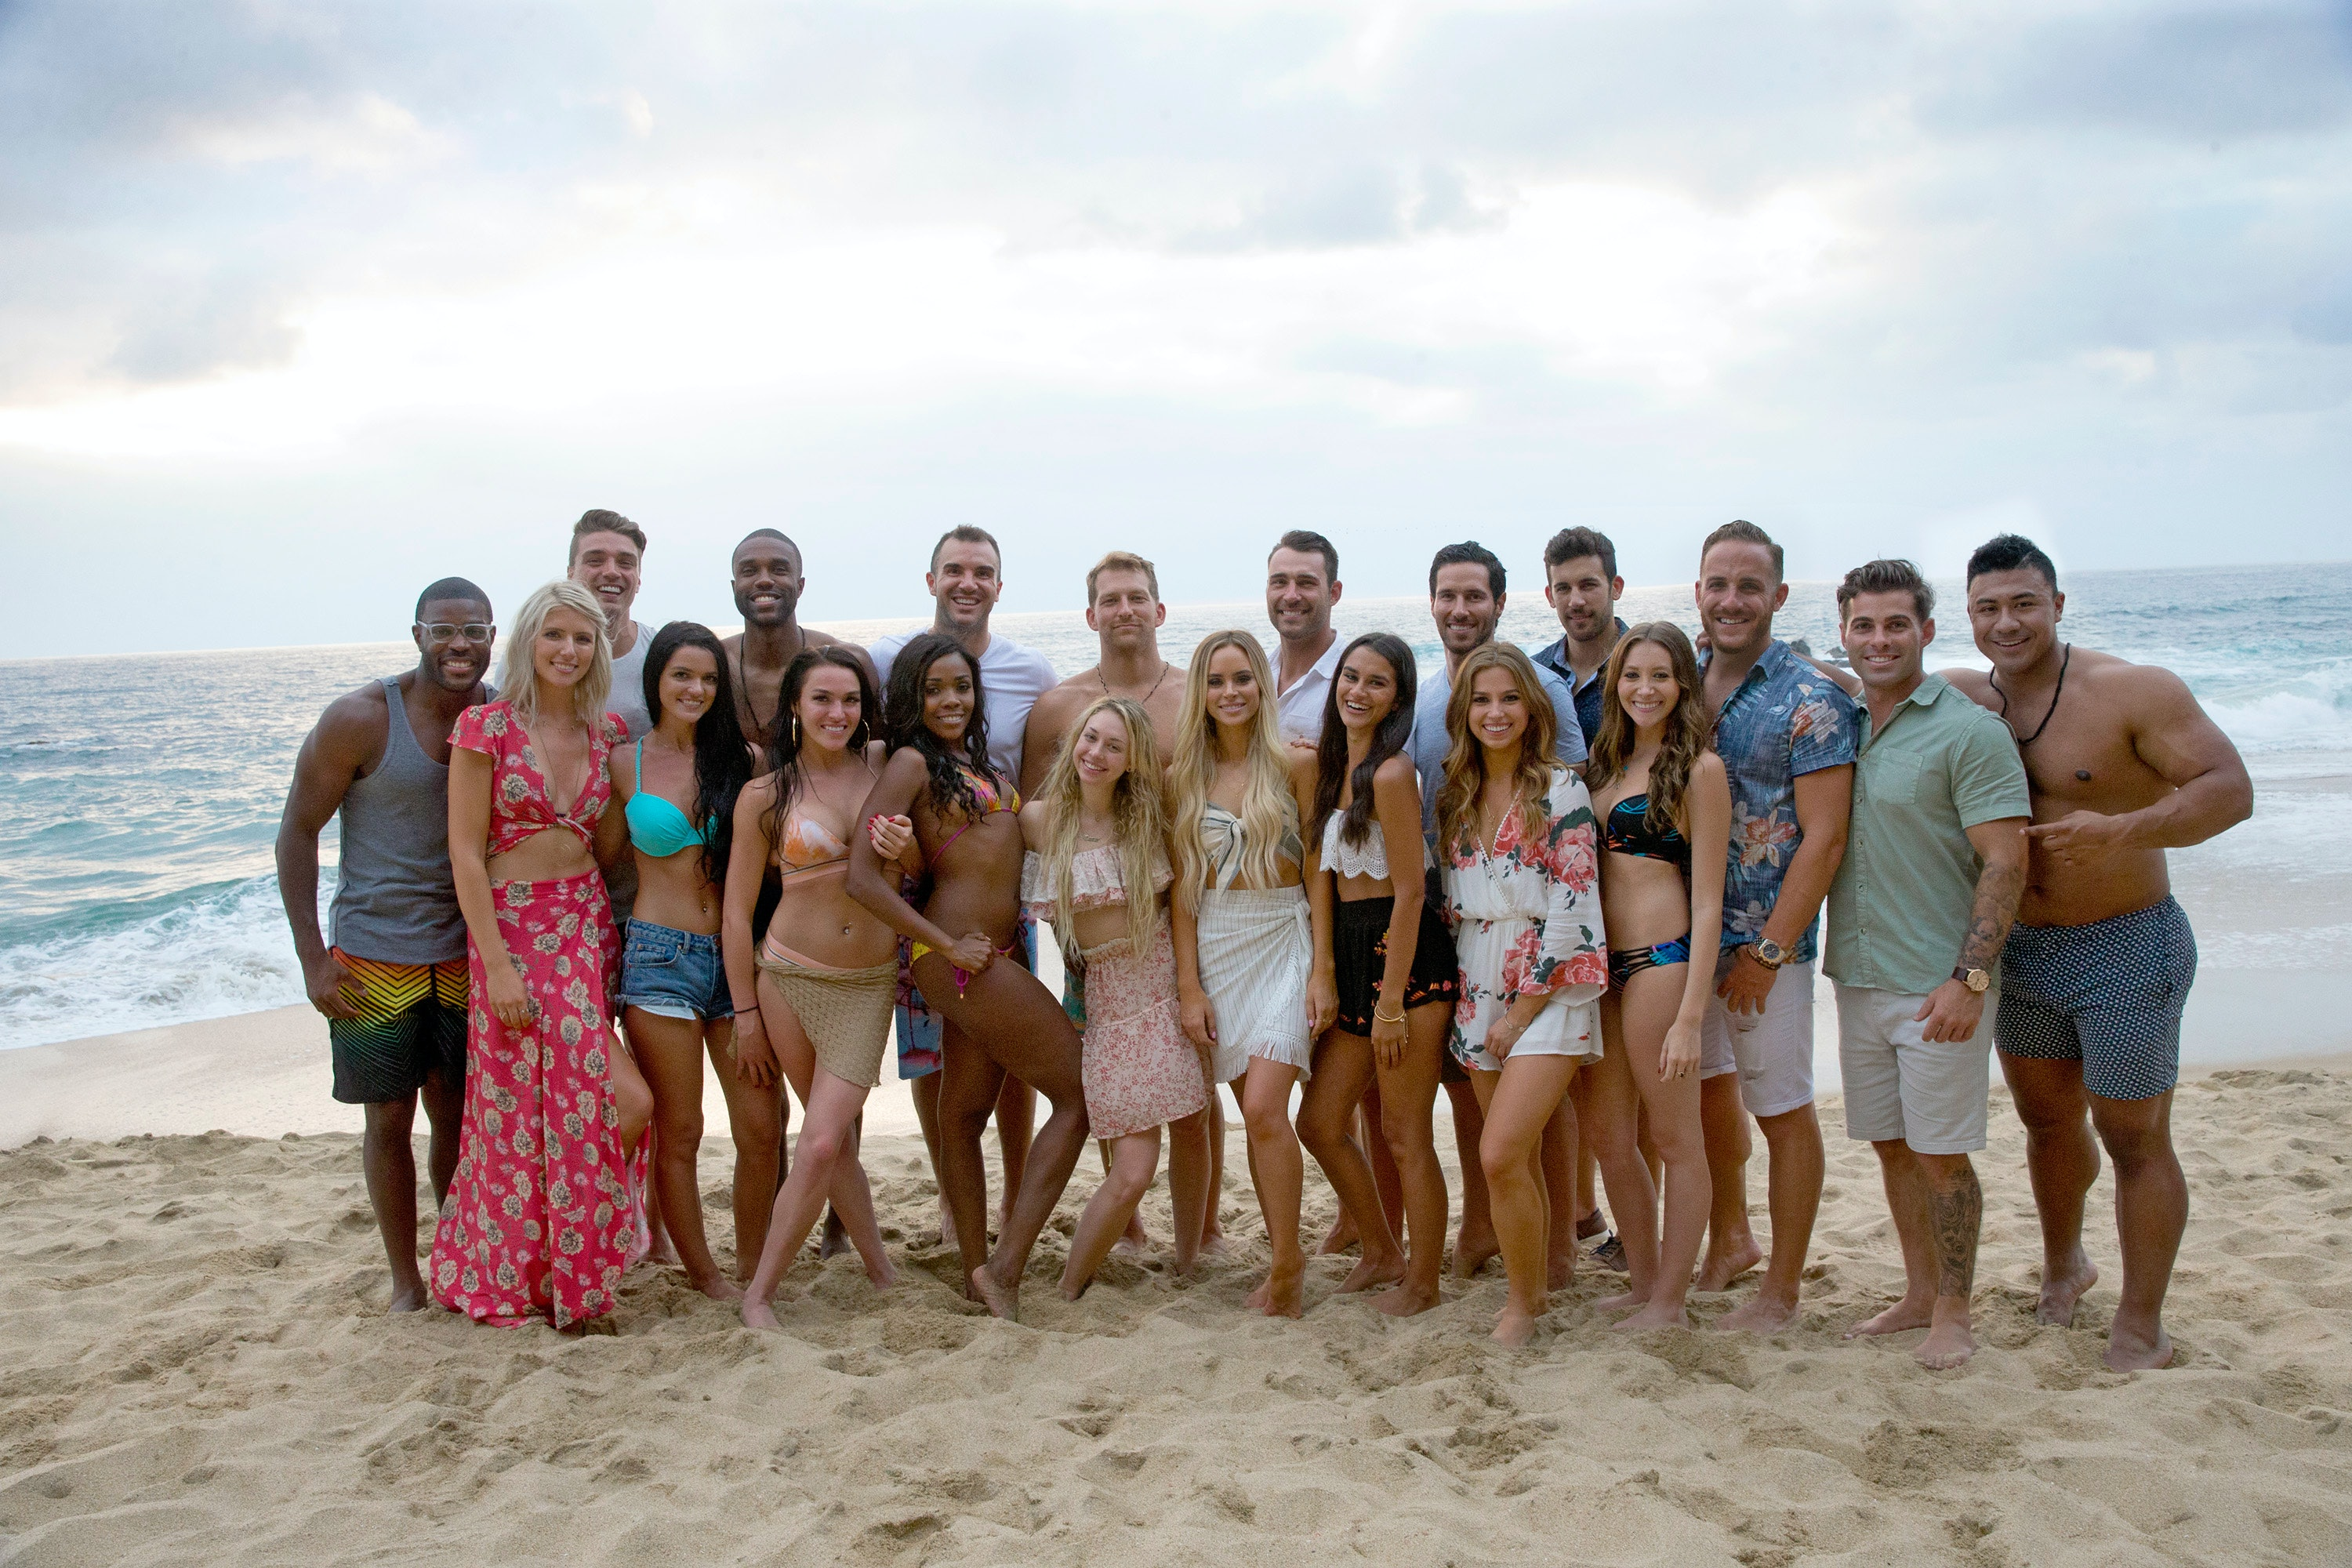 Aug 2011. Jake Pavelka and his Bachelor ex, Vienna Girardi, are still at odds, and theyre willing to do anything it takes to keep the other from winning.